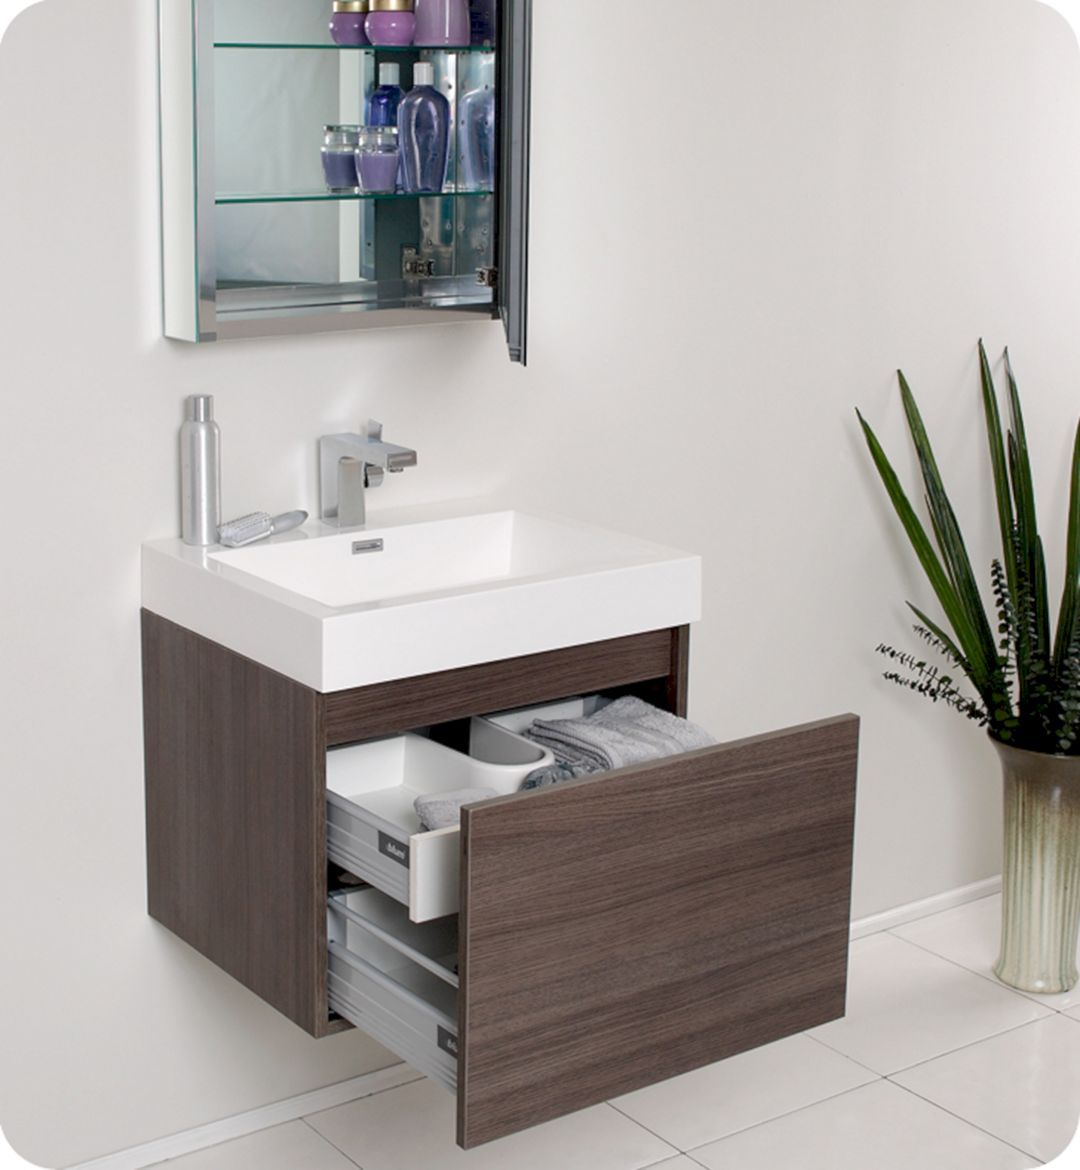 20+ Modern Bathroom Storage Ideas For Best Storage